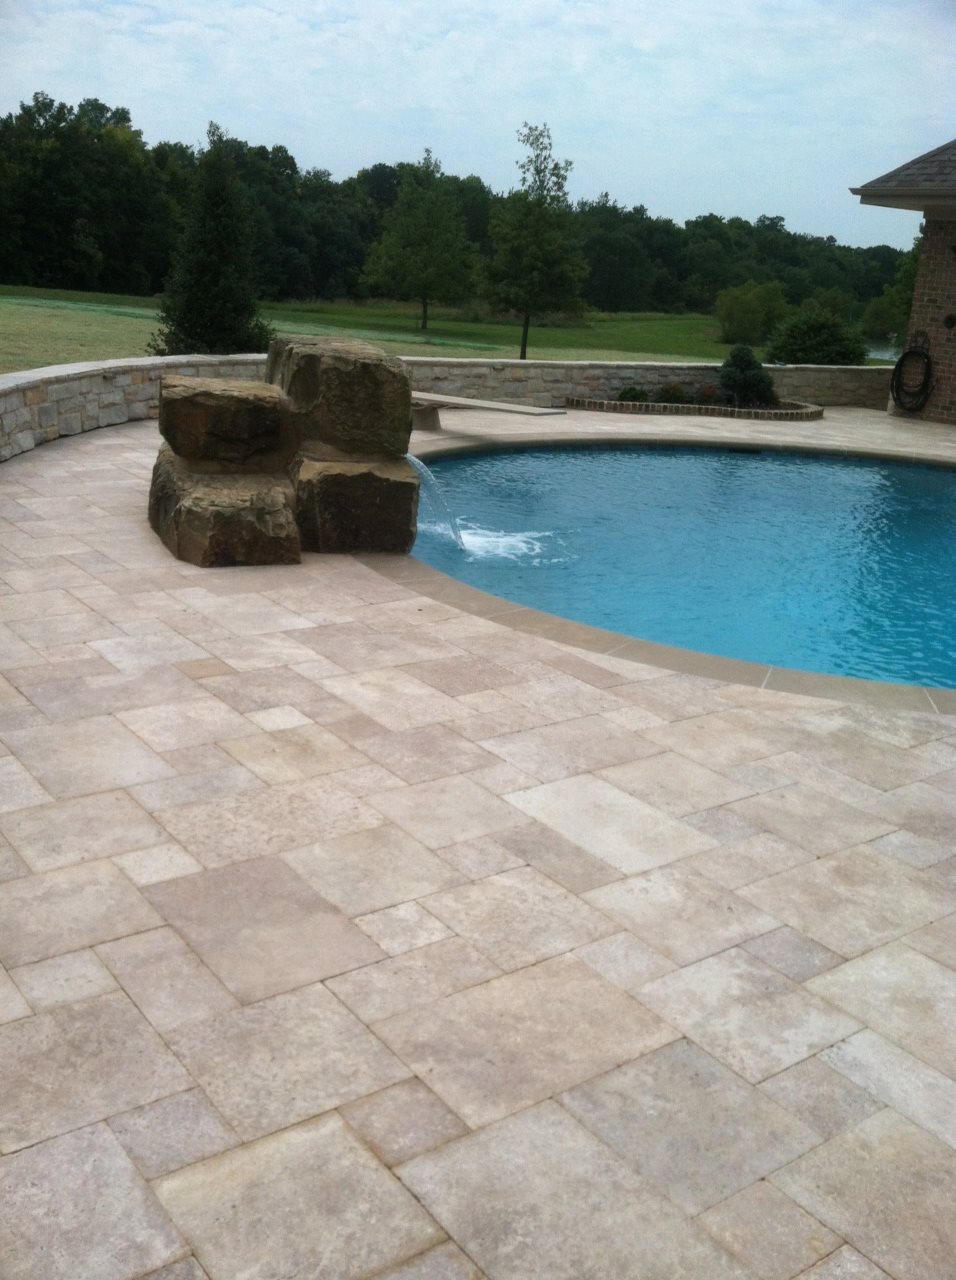 Pool Decks Pool Design Swimming Pool Builder Dayton Oh Pool Coping Two Brothers Brick Paving